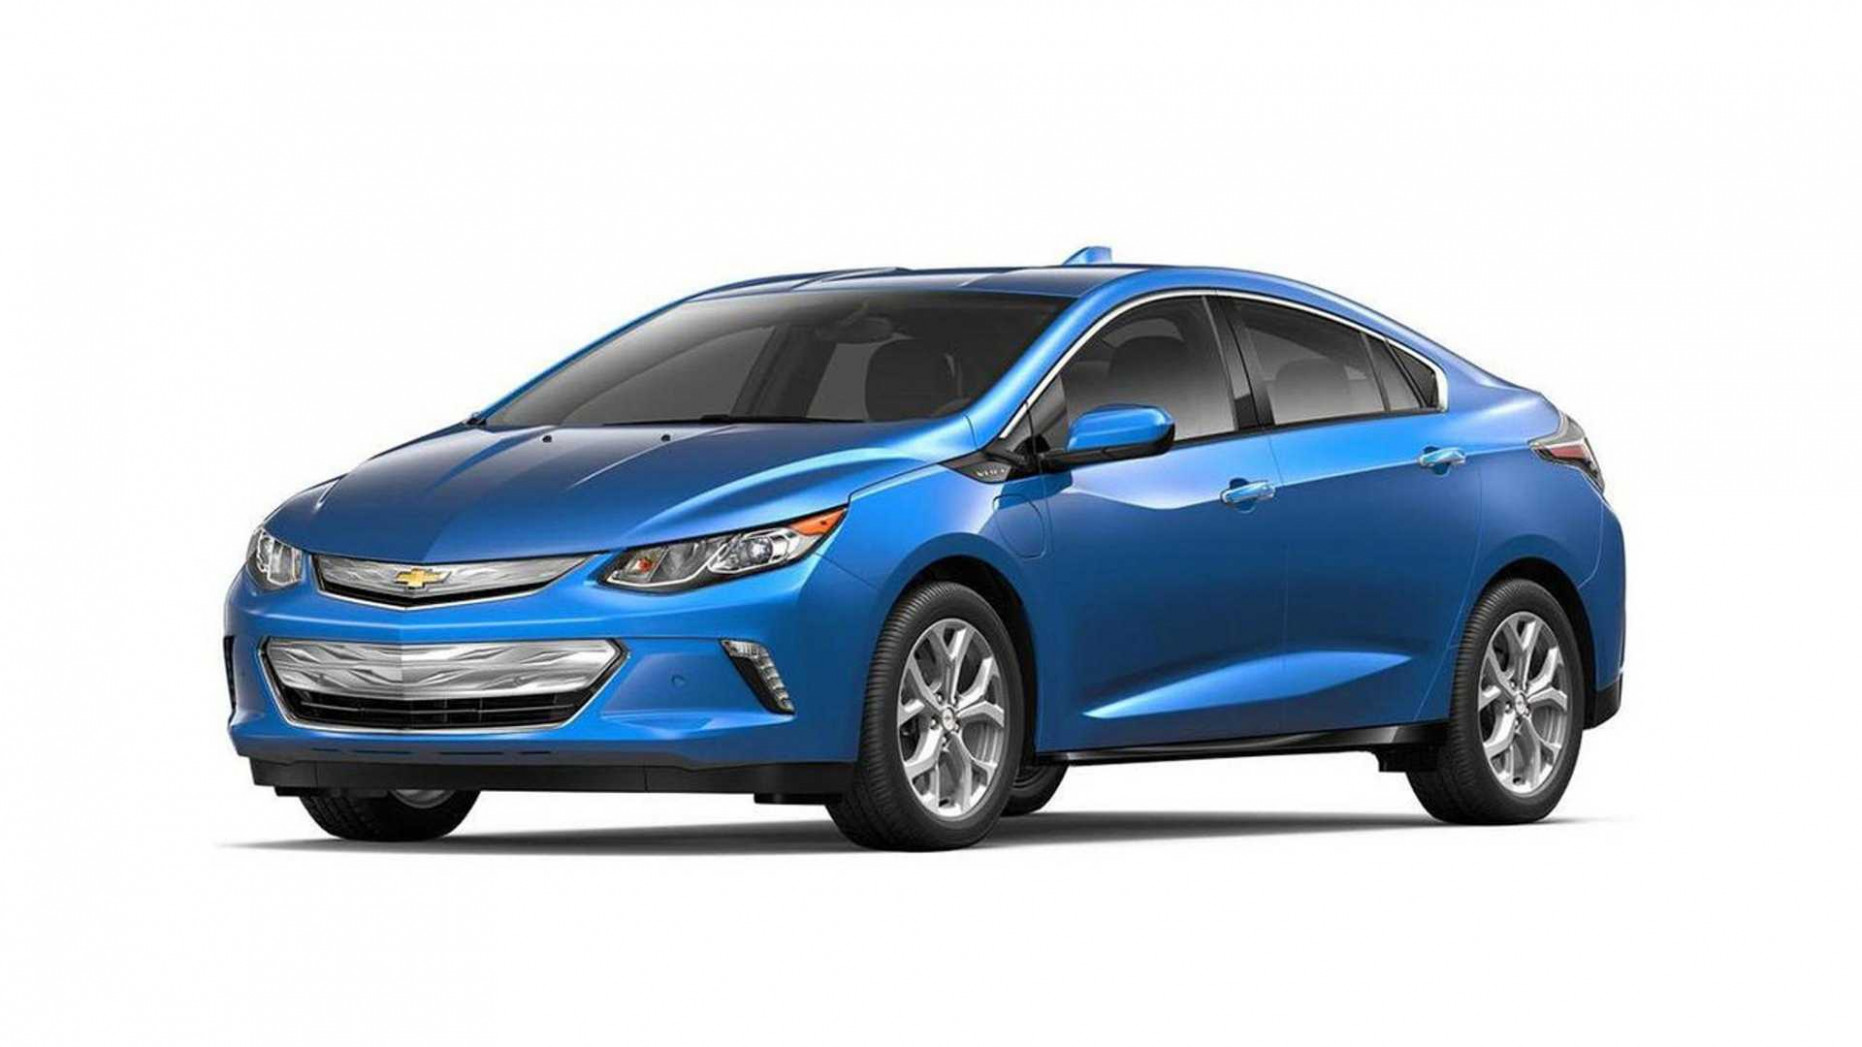 Pricing 2022 Chevy Volt